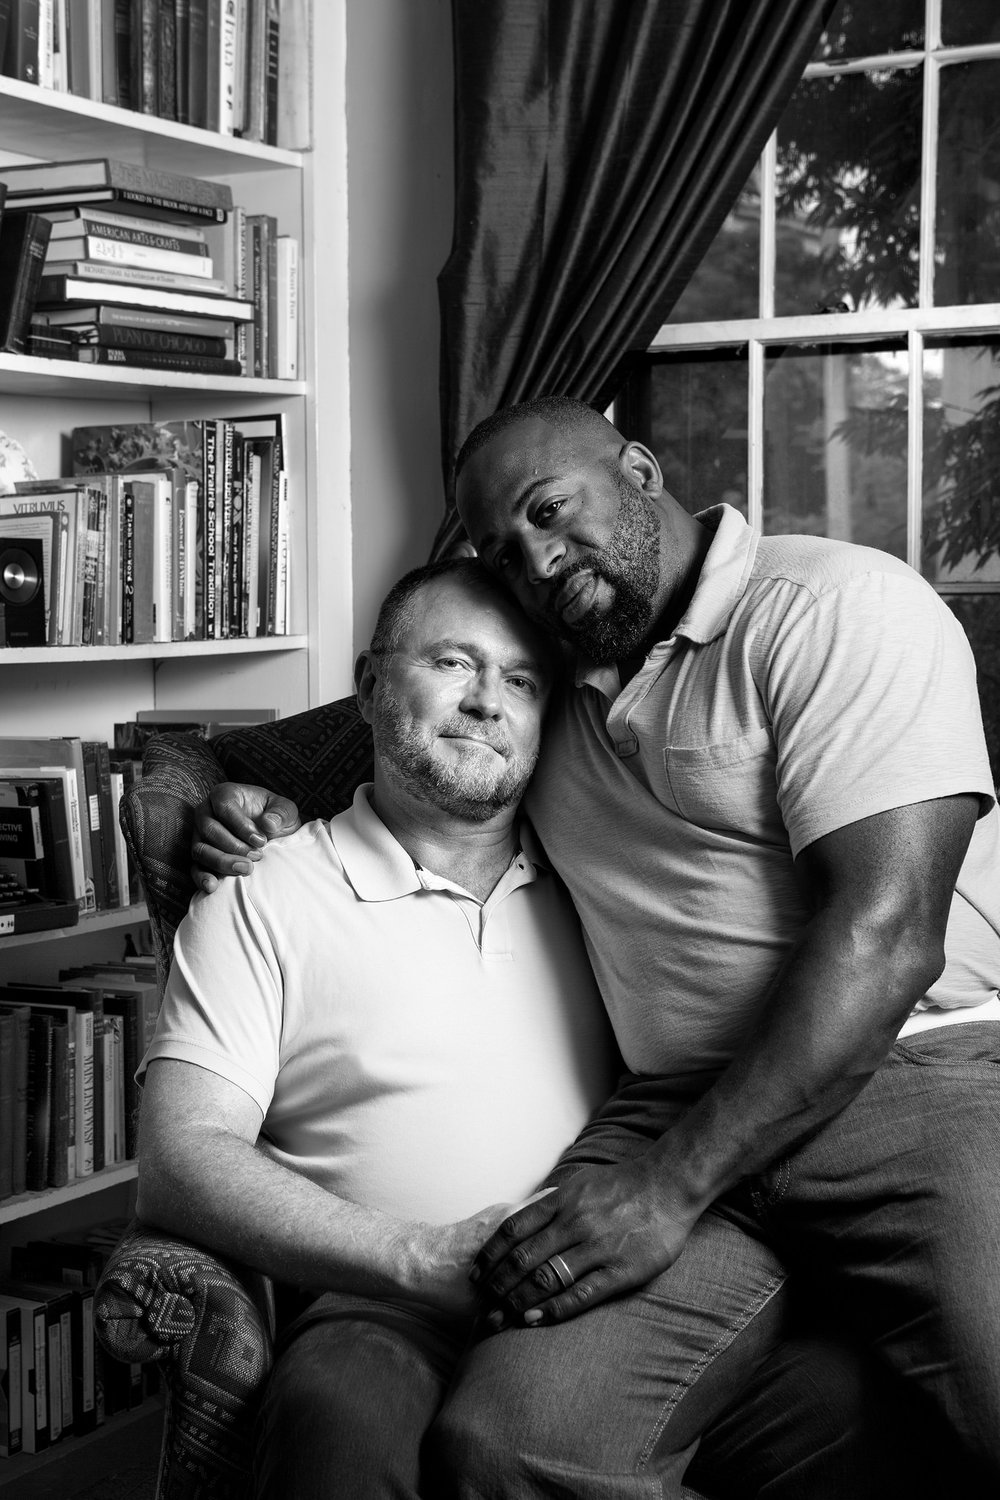 Ron and Marc, Together 11 Years. B. Proud. All rights reserved.